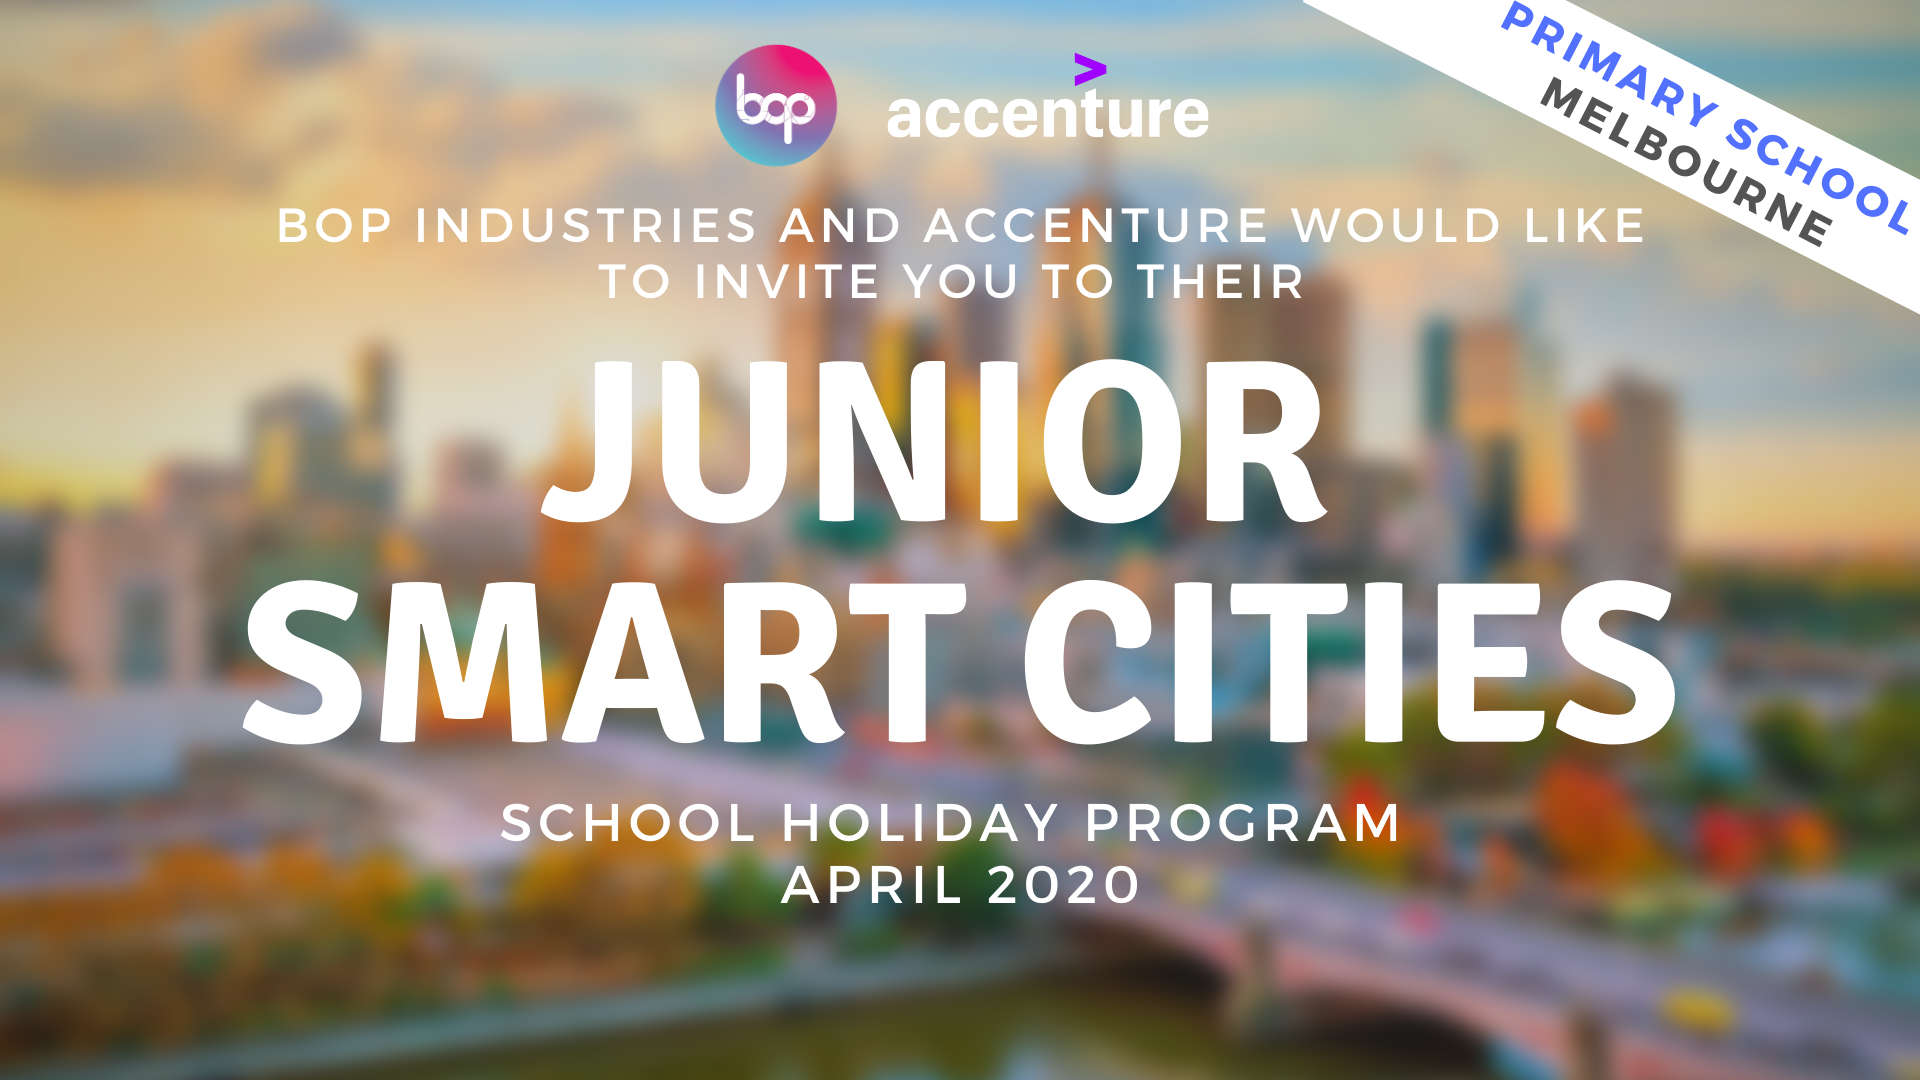 Junior Smart Cities Holiday Program With Accenture - Melbourne